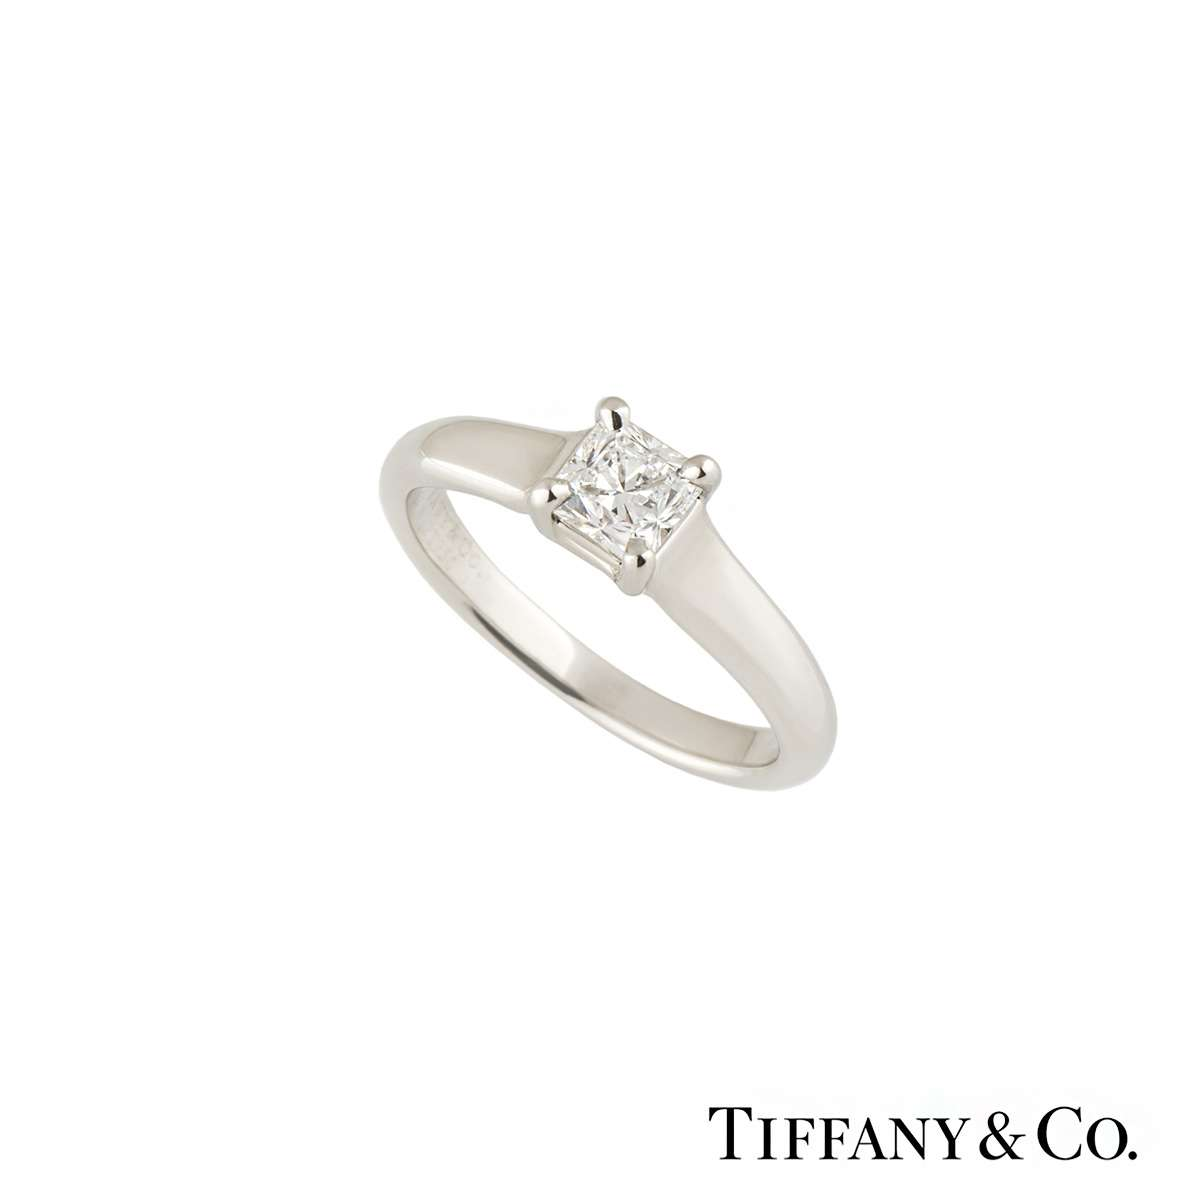 engagement platinum co and solitaire is carat sale jewelry j at ring this authentic unmatched classic tiffany l g amp id for of diamond lucida rings elegance